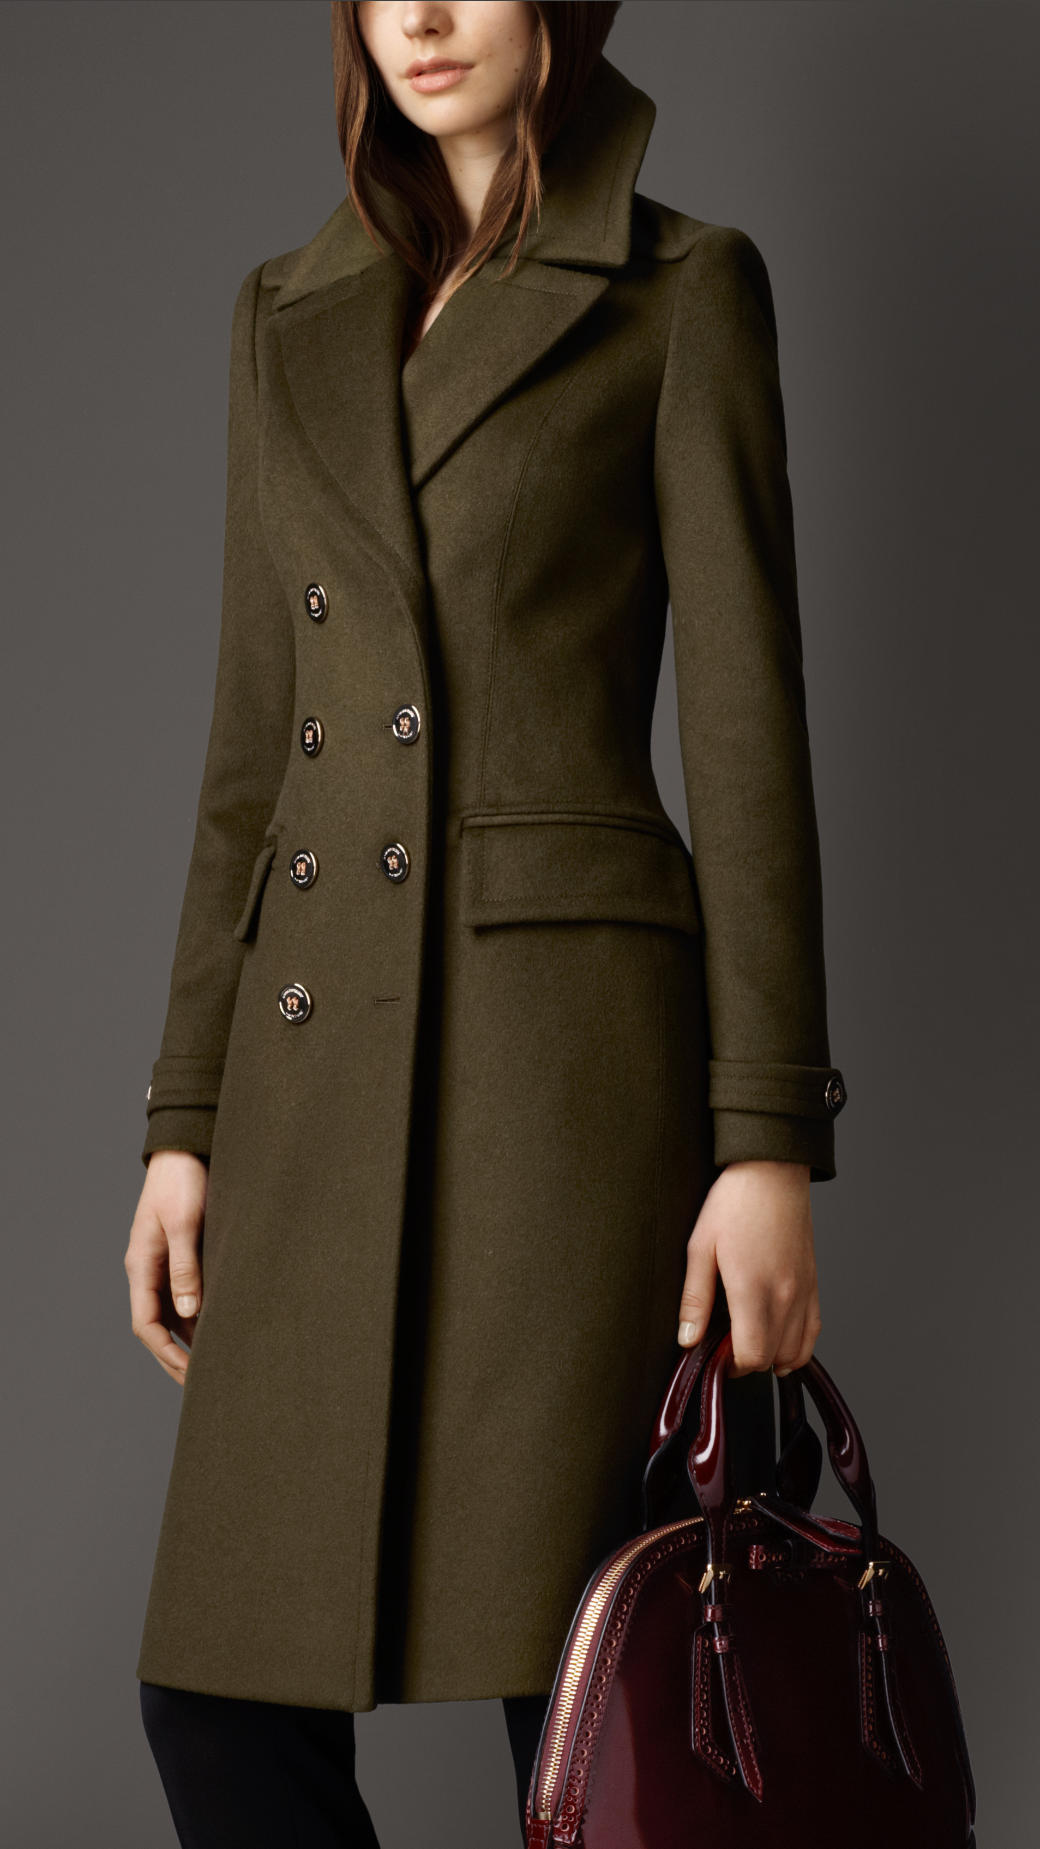 7cee699b71b Astonishing Lyst Burberry Shearling Collar Wool Blend Pea Coat In ...